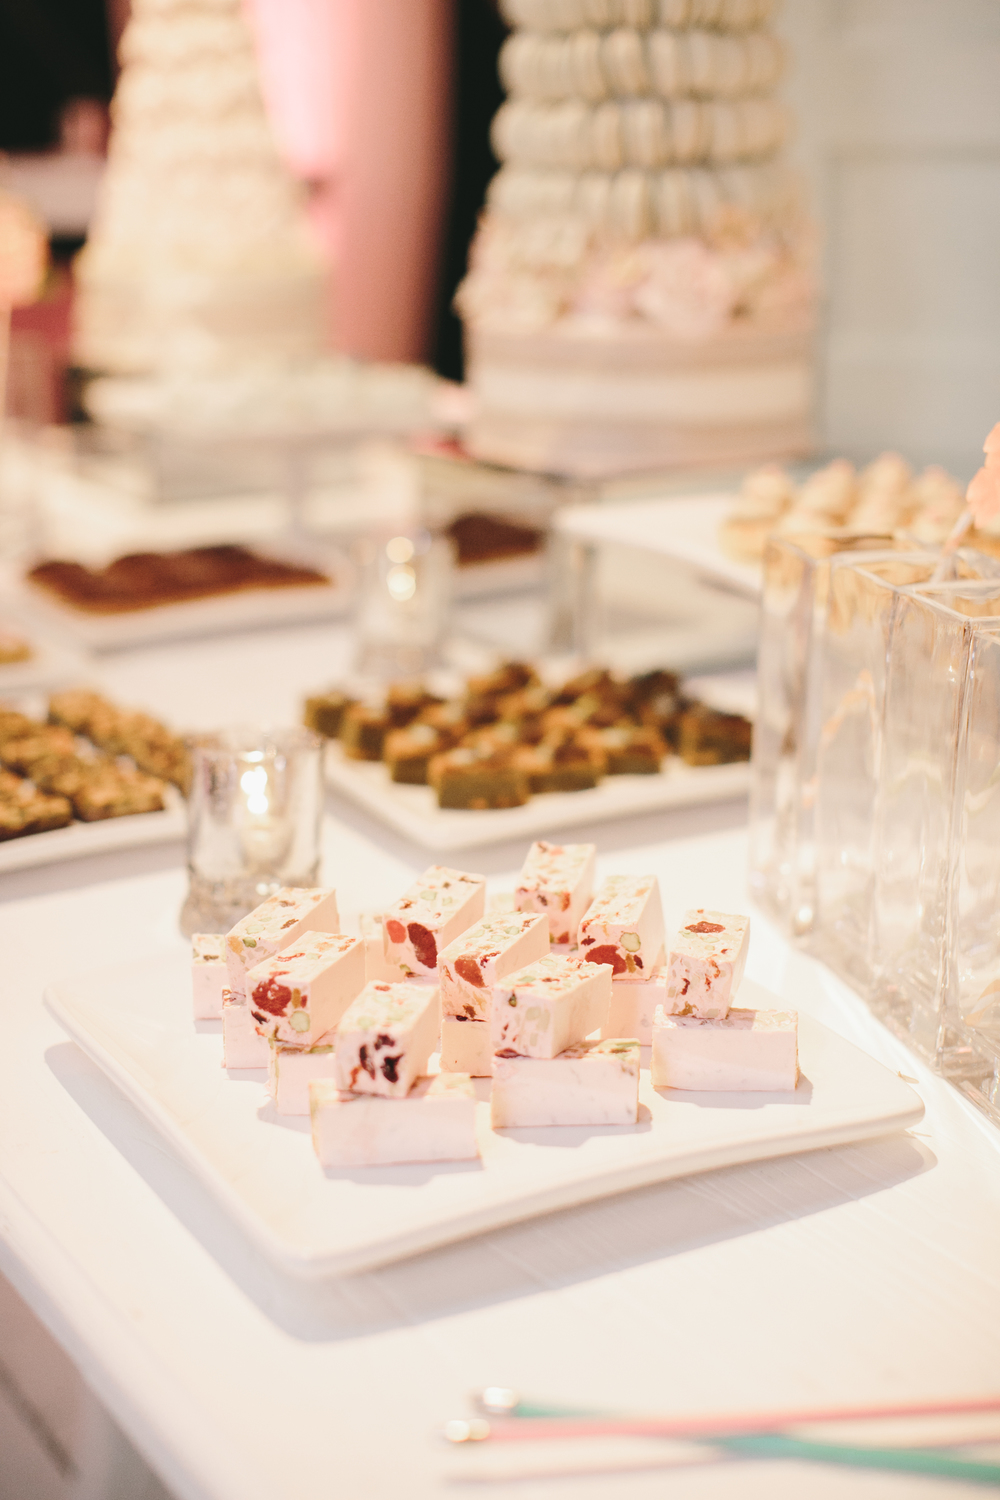 Sweet Table | Wedding Planning & Design by Cynthia Martyn Fine Events |  | Fine Art Wedding Planning & Design